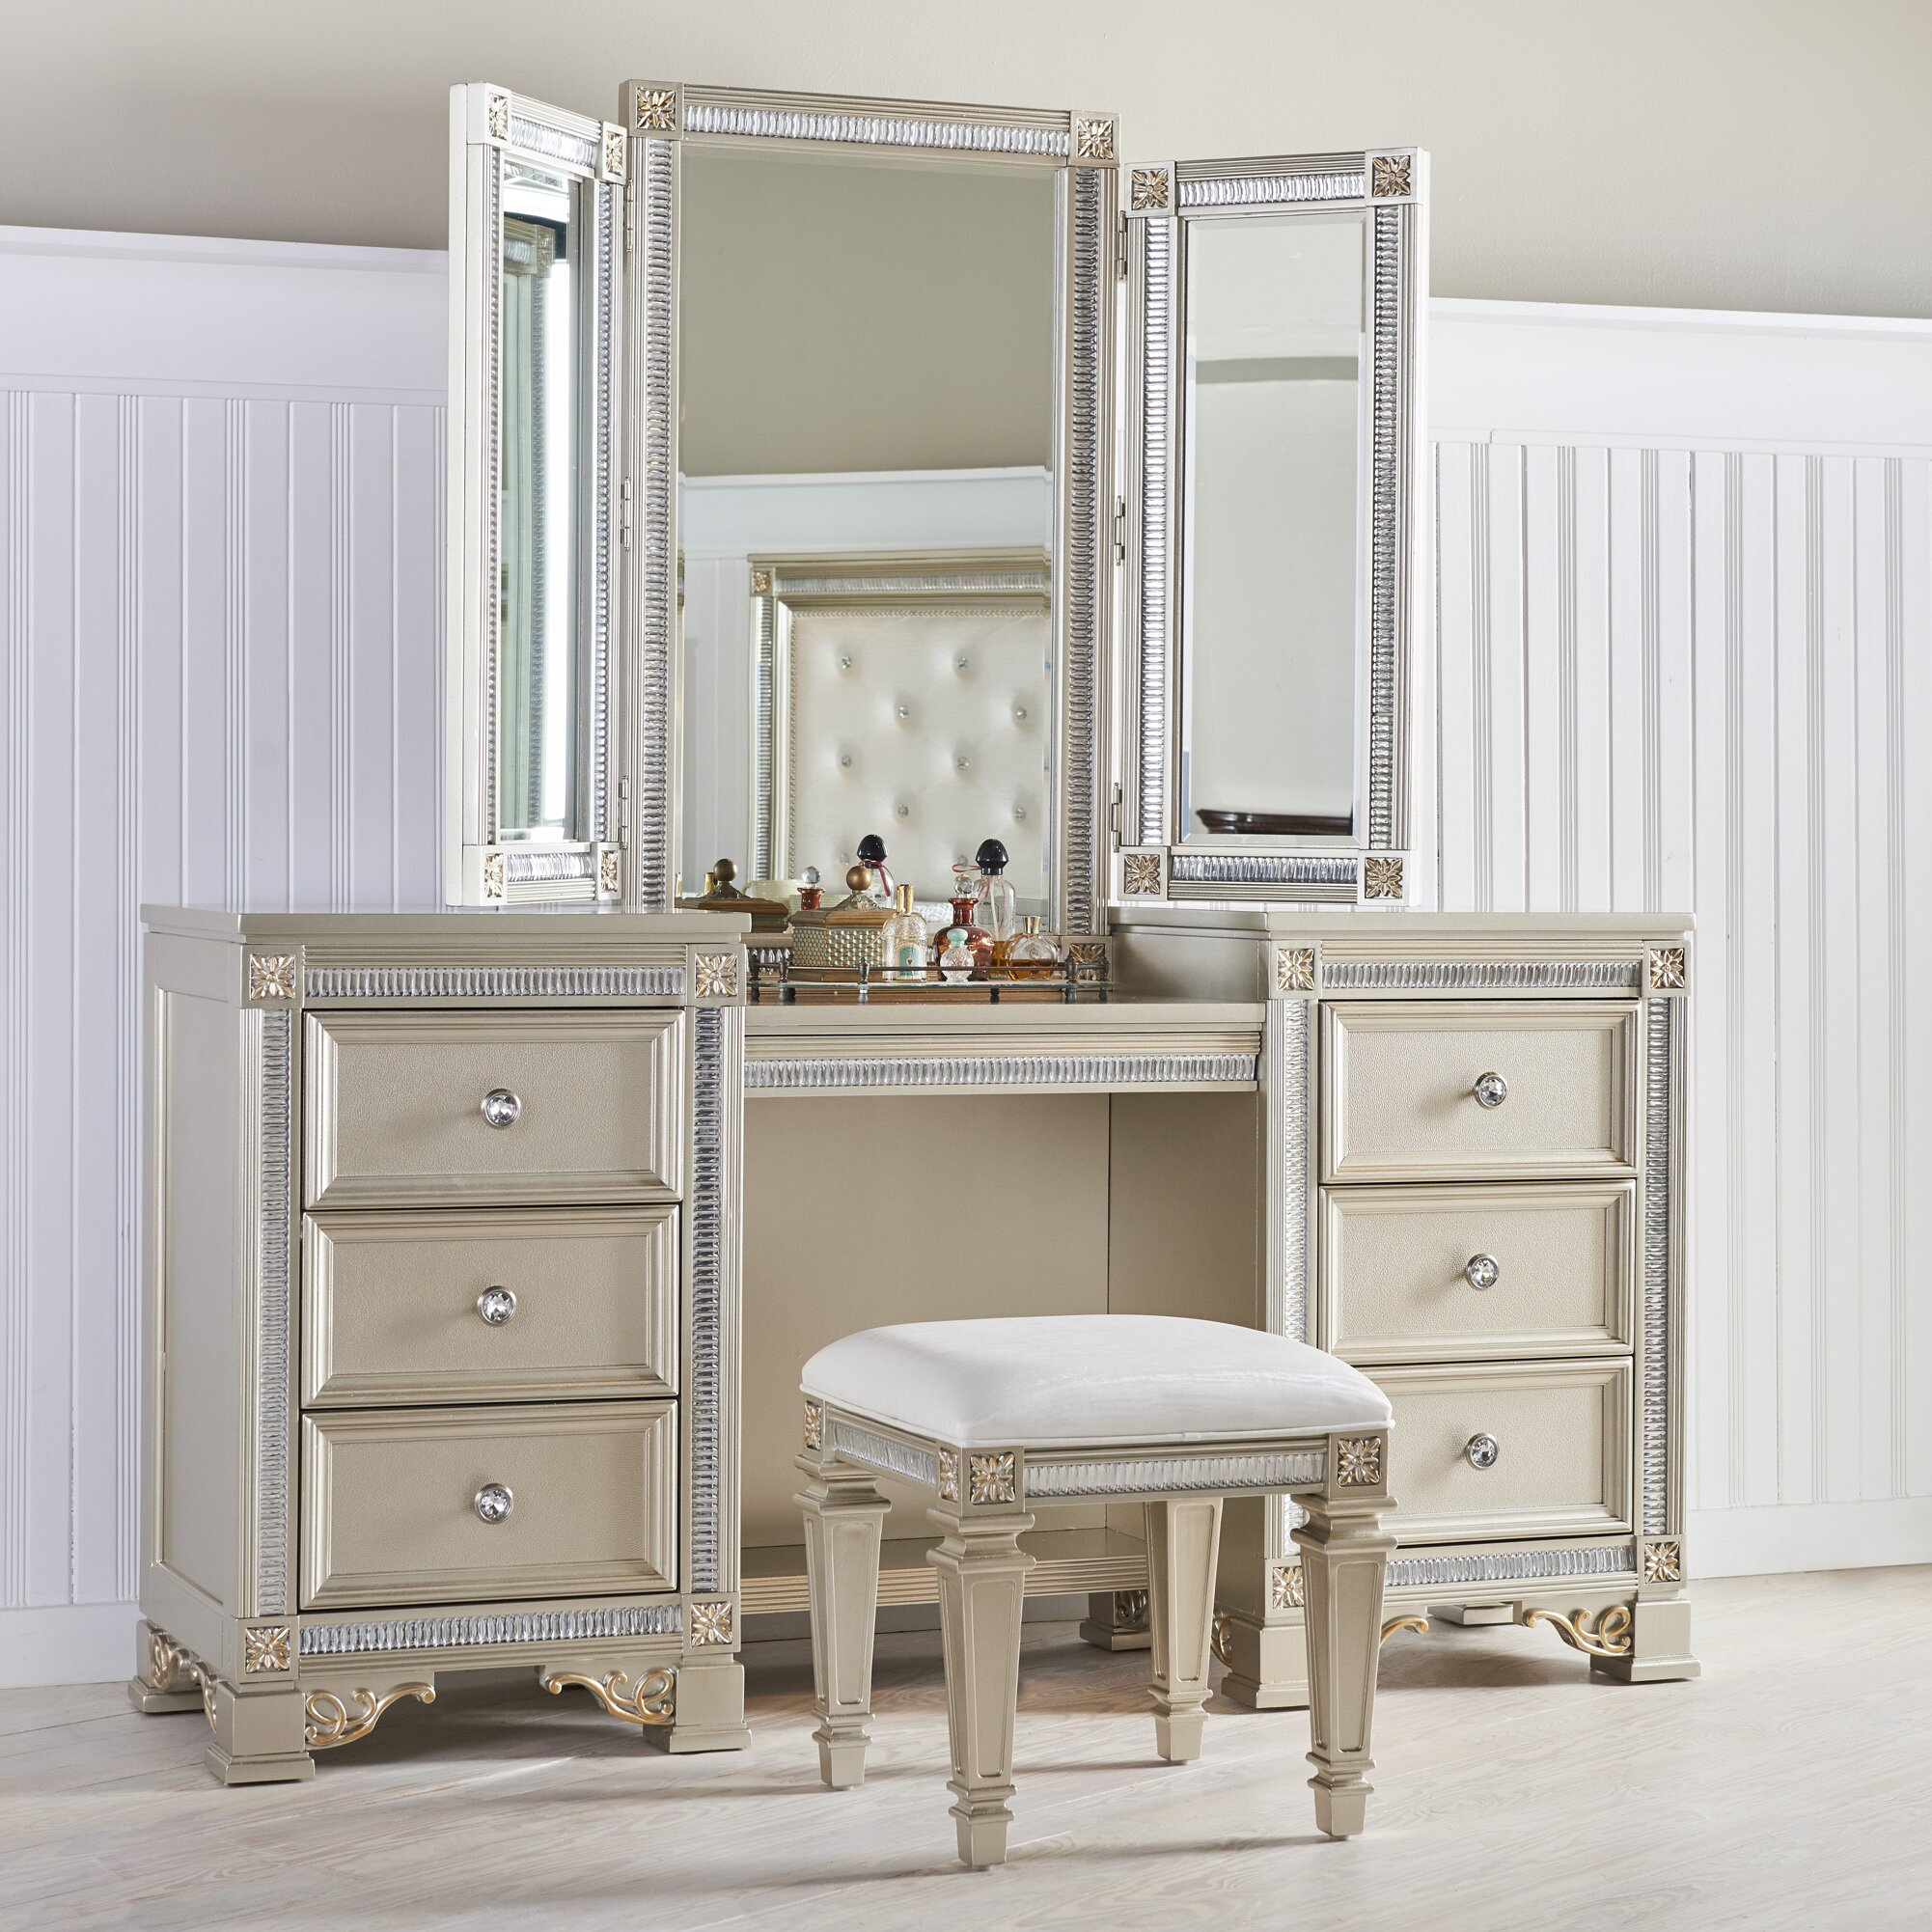 Tiffany Vanity 1600 VANITY FPRF1169 on Living Room Furniture Collections